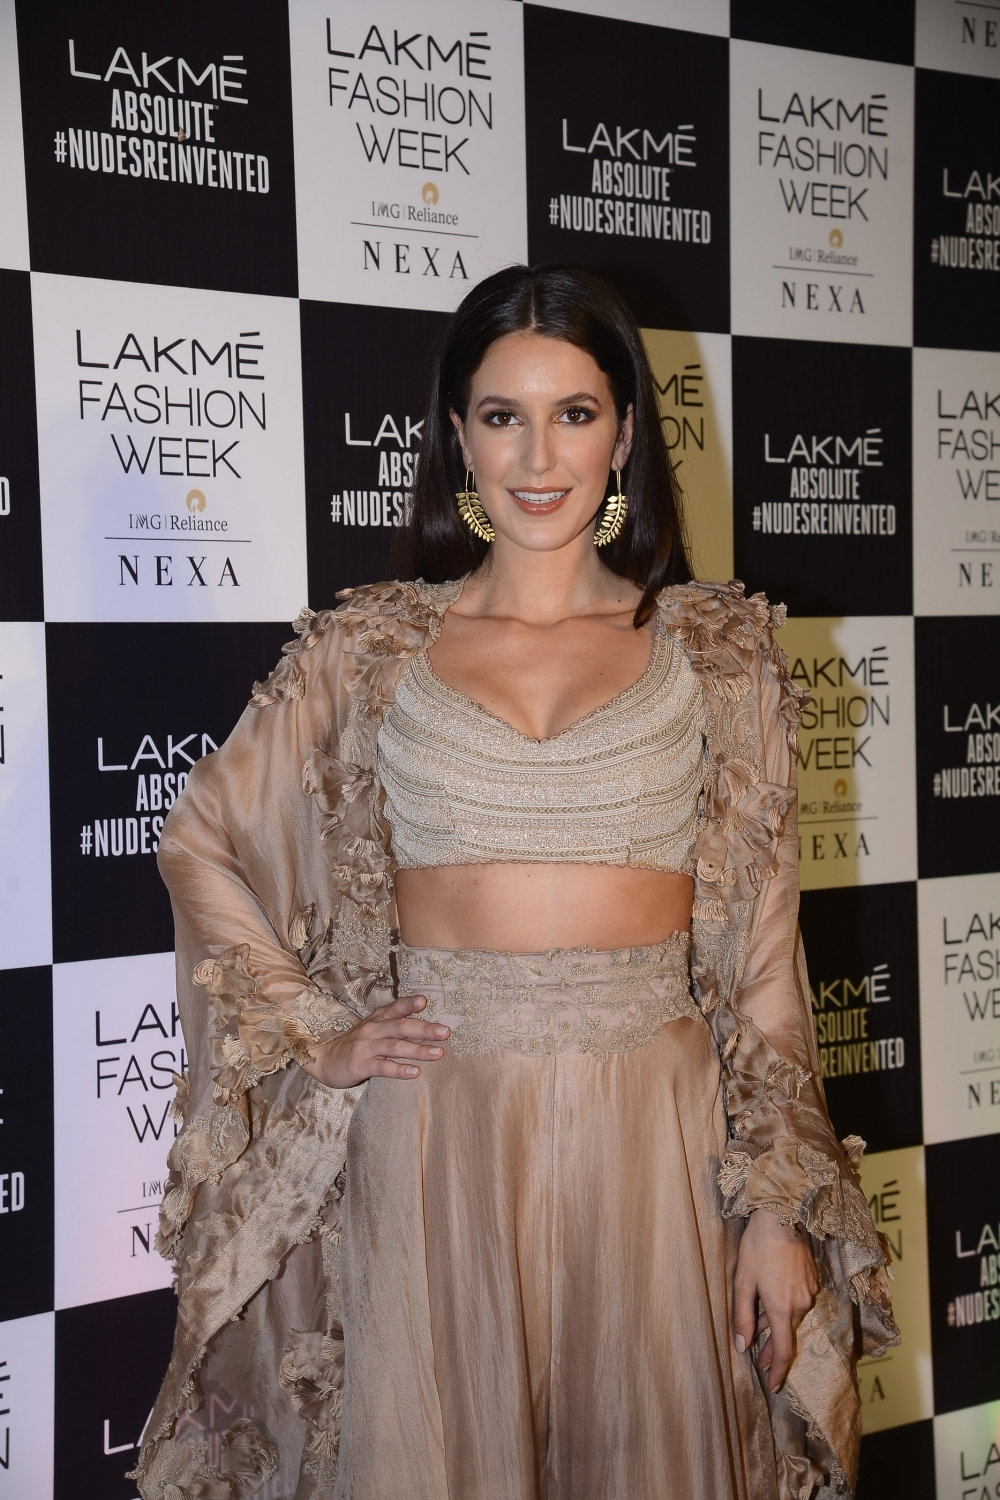 Mumbai: Actress Isabelle Kaif during the Lakme Fashion Week Summer/Resort 2018 in Mumbai on Feb 4, 2018. (Photo: IANS)